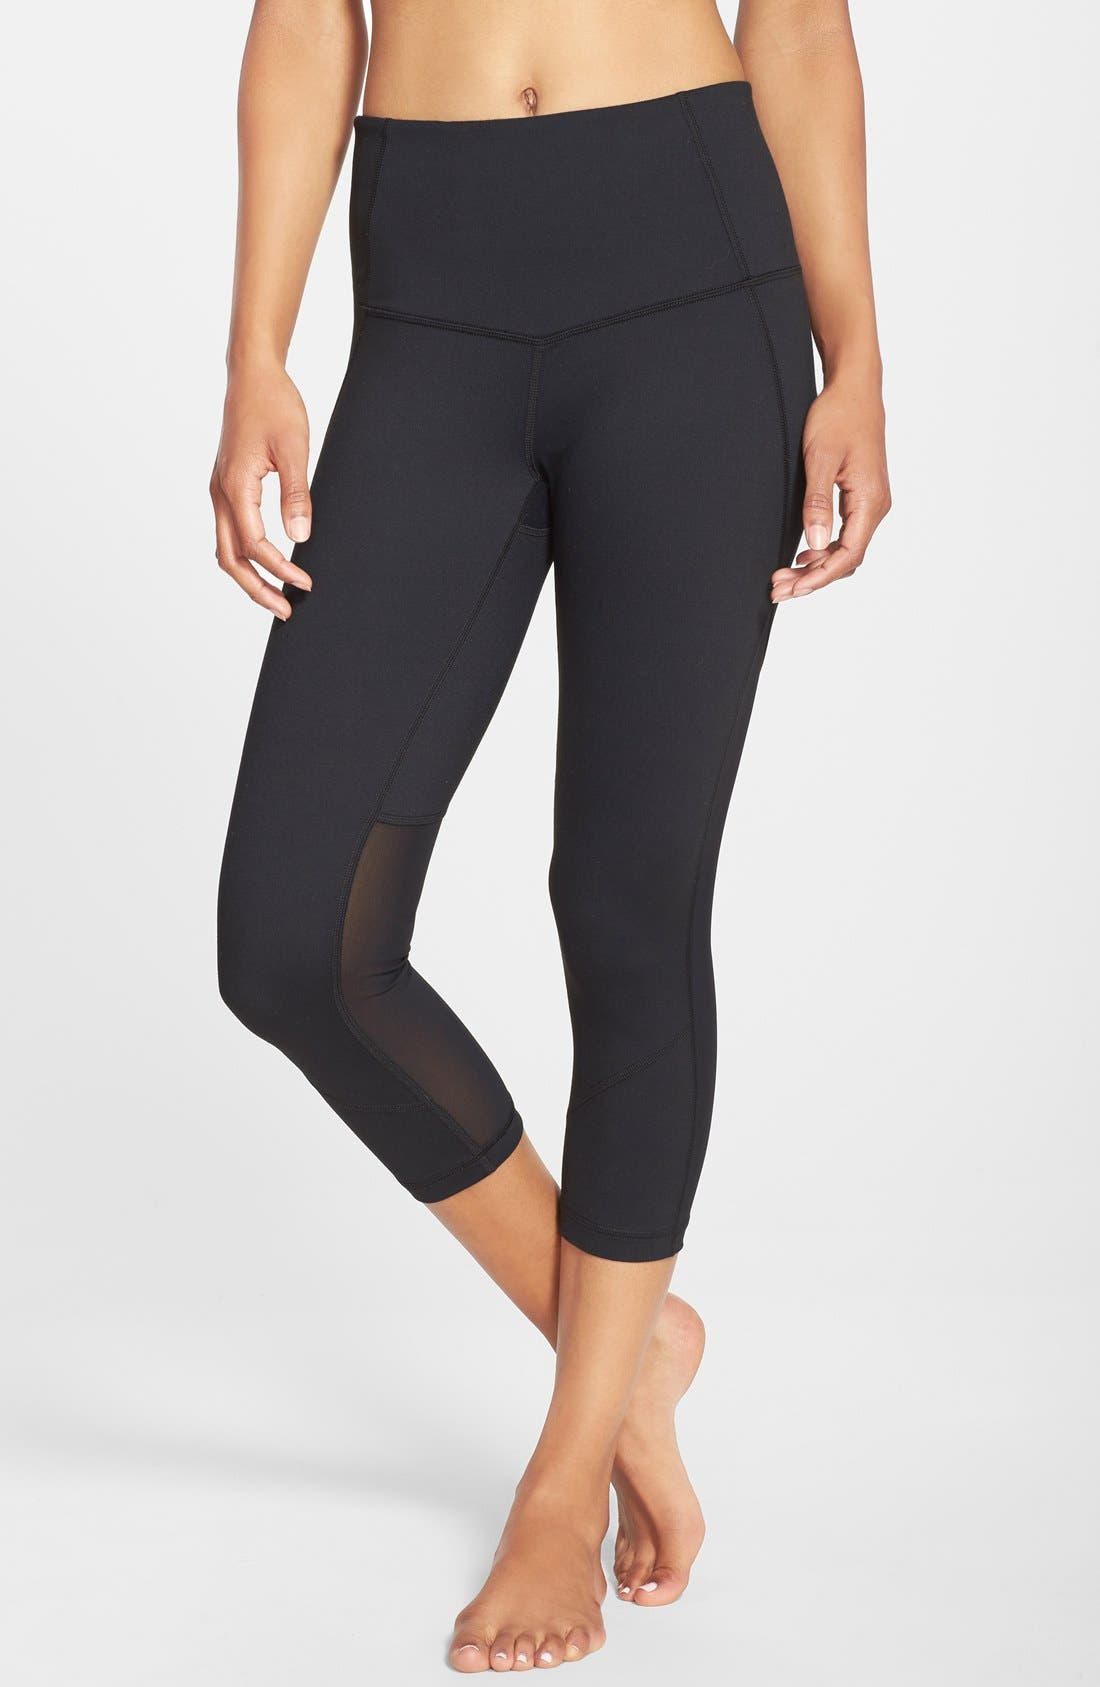 'Live In - Sultry' High Waist Mesh Crop Leggings,                             Alternate thumbnail 8, color,                             001